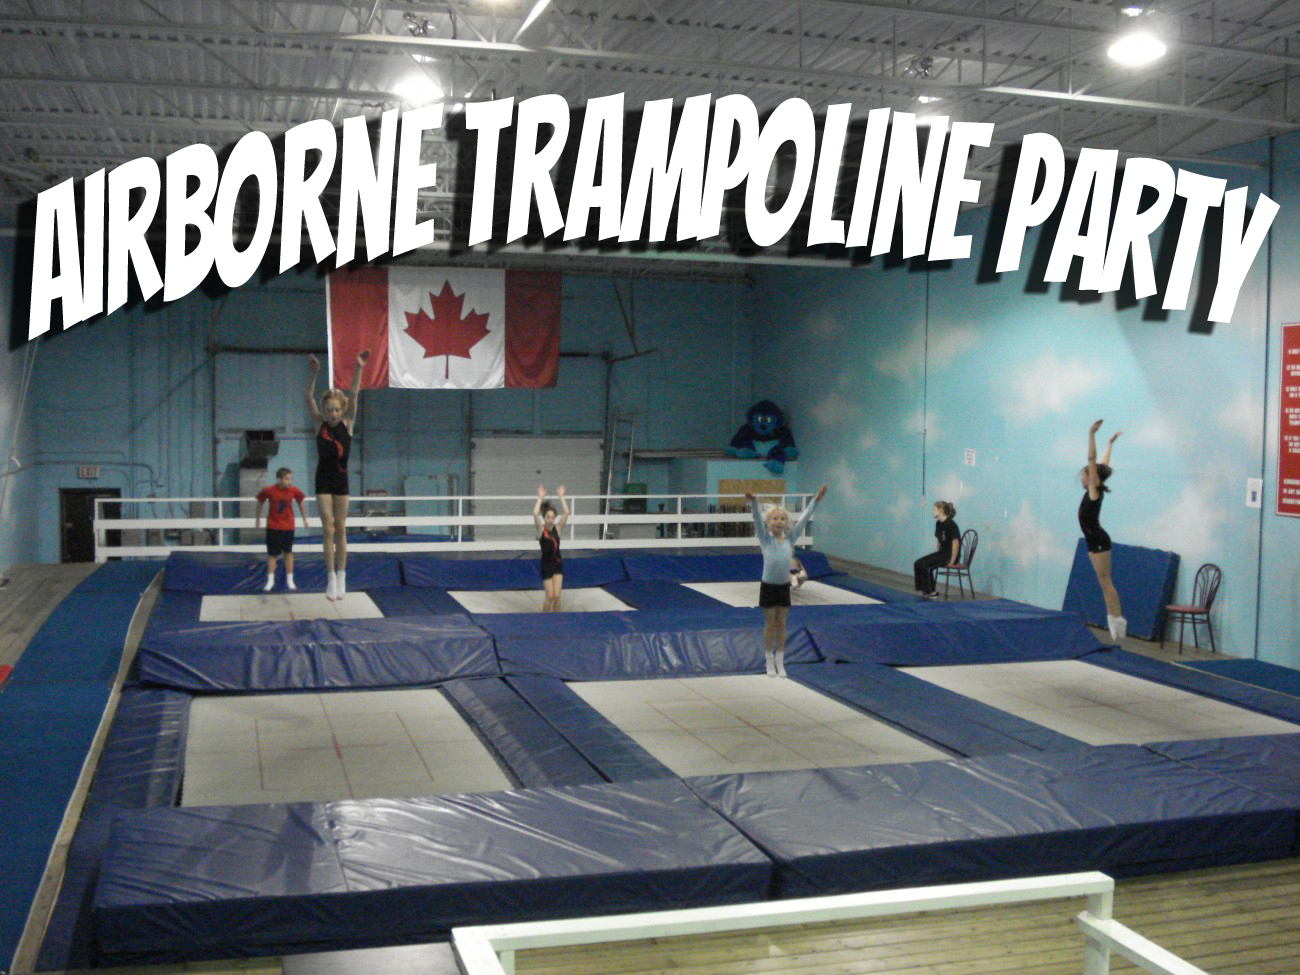 Airborne Trampoline Party